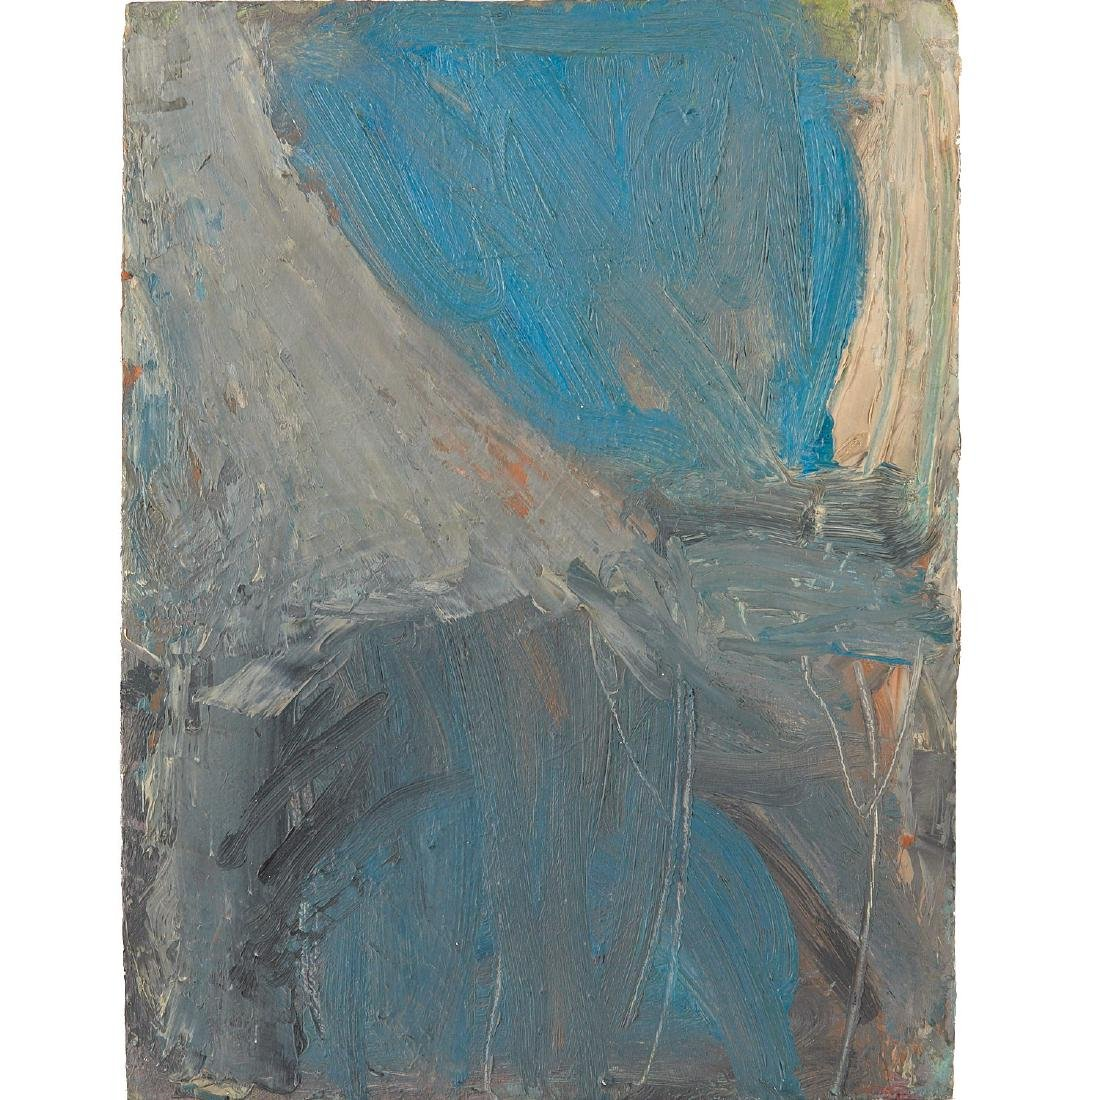 Kimber Smith, Untitled Abstract, 1952